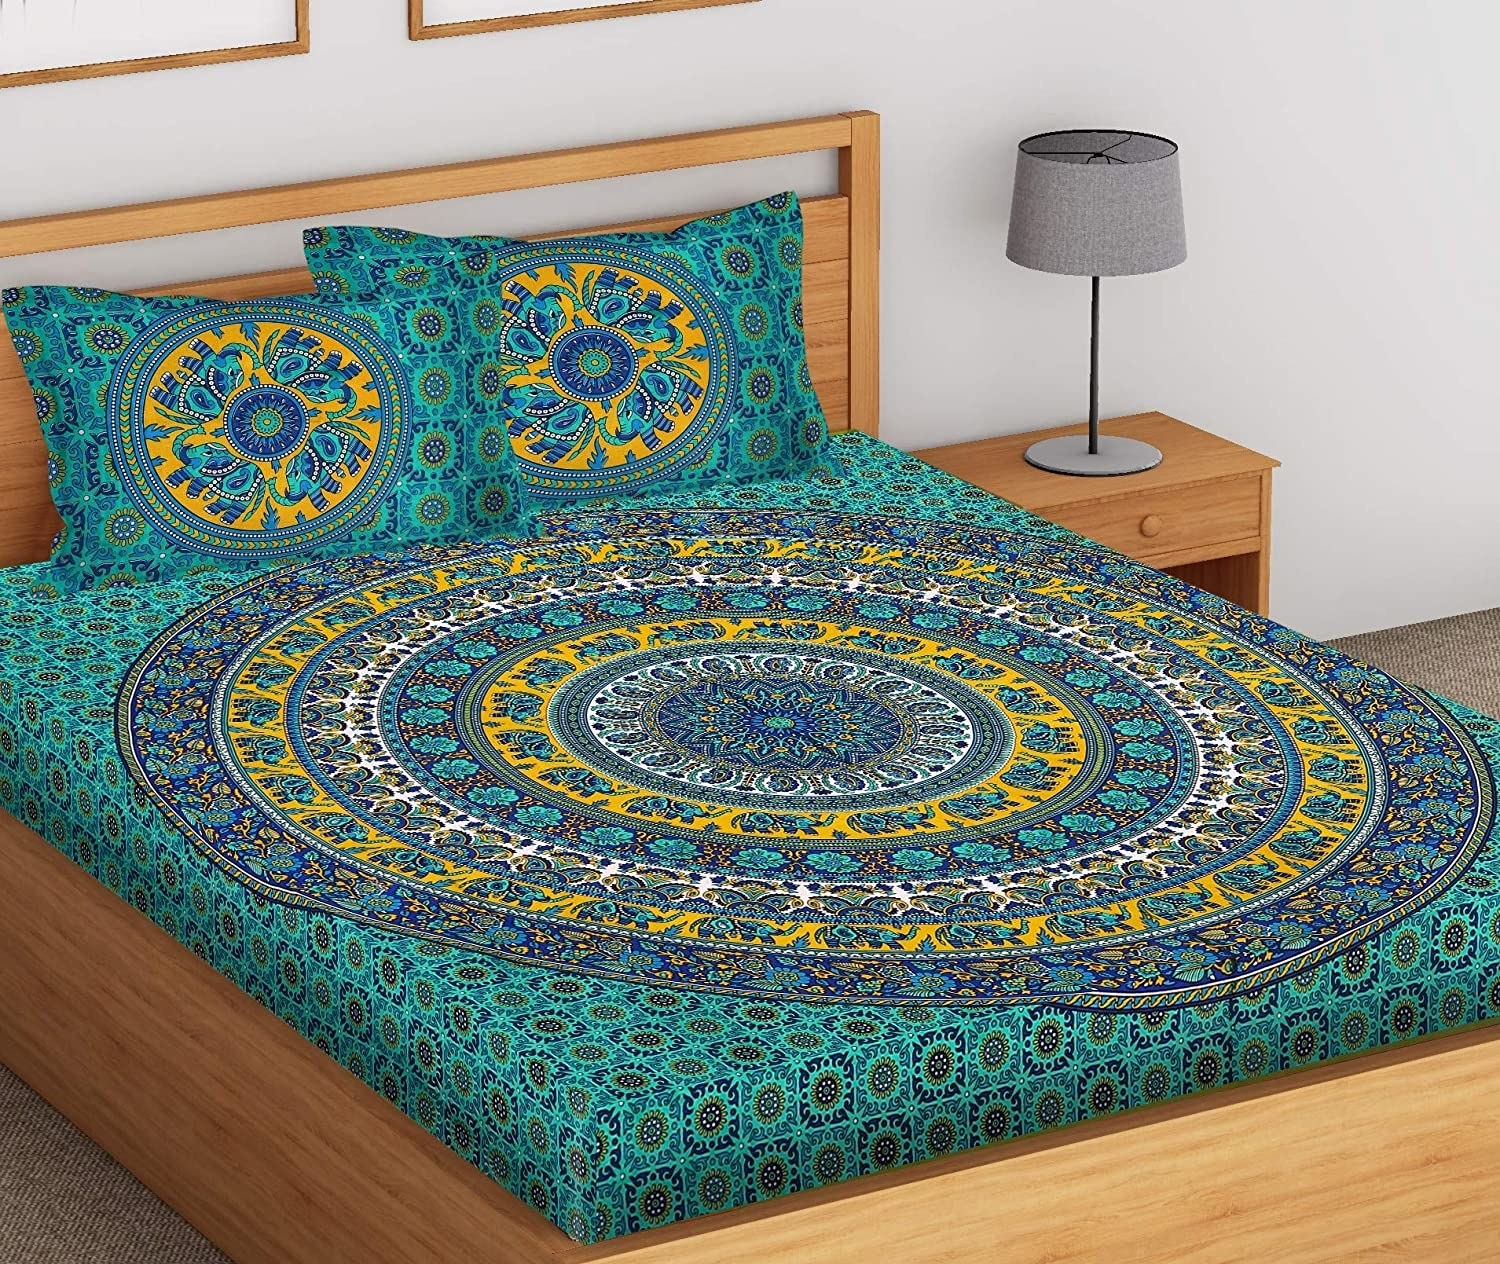 A double king size bedsheet with 2 pillow covers in green and yellow with a mandala design on it